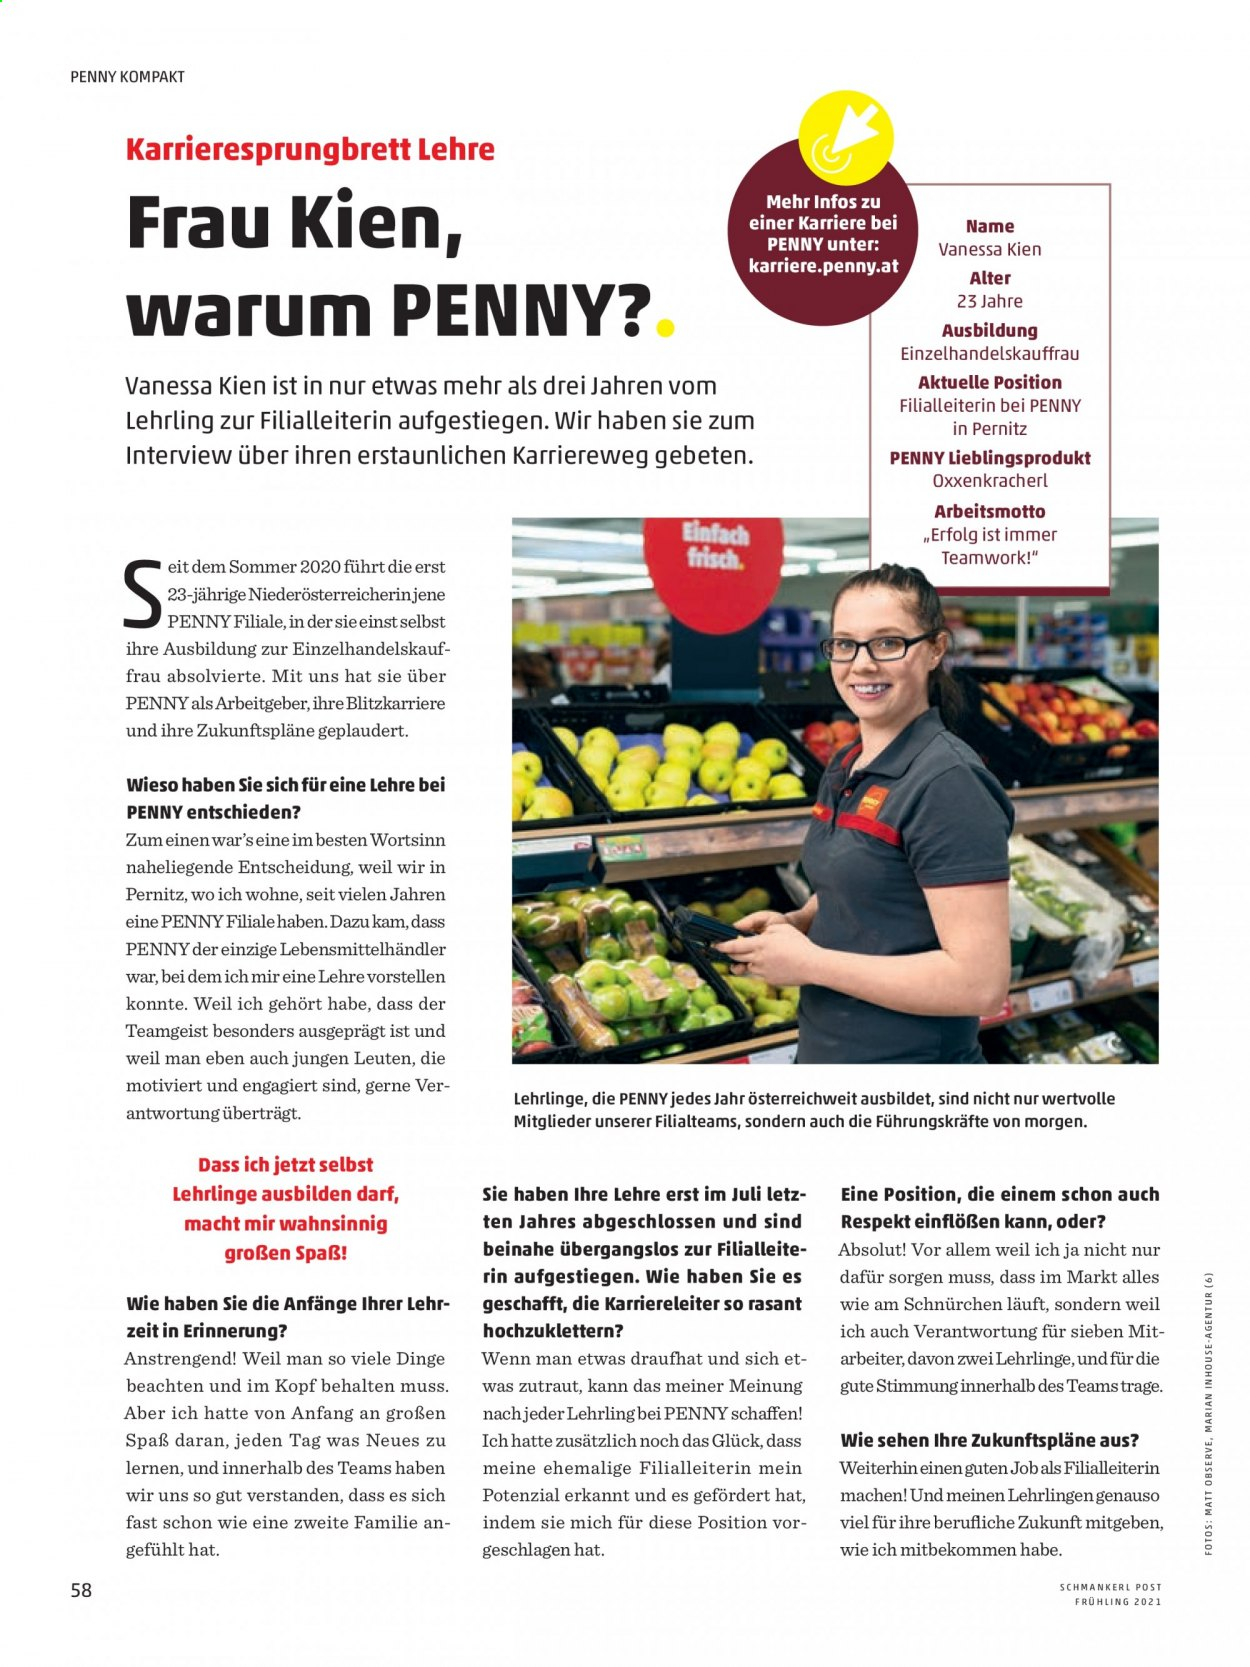 Angebote Penny. Seite 58.